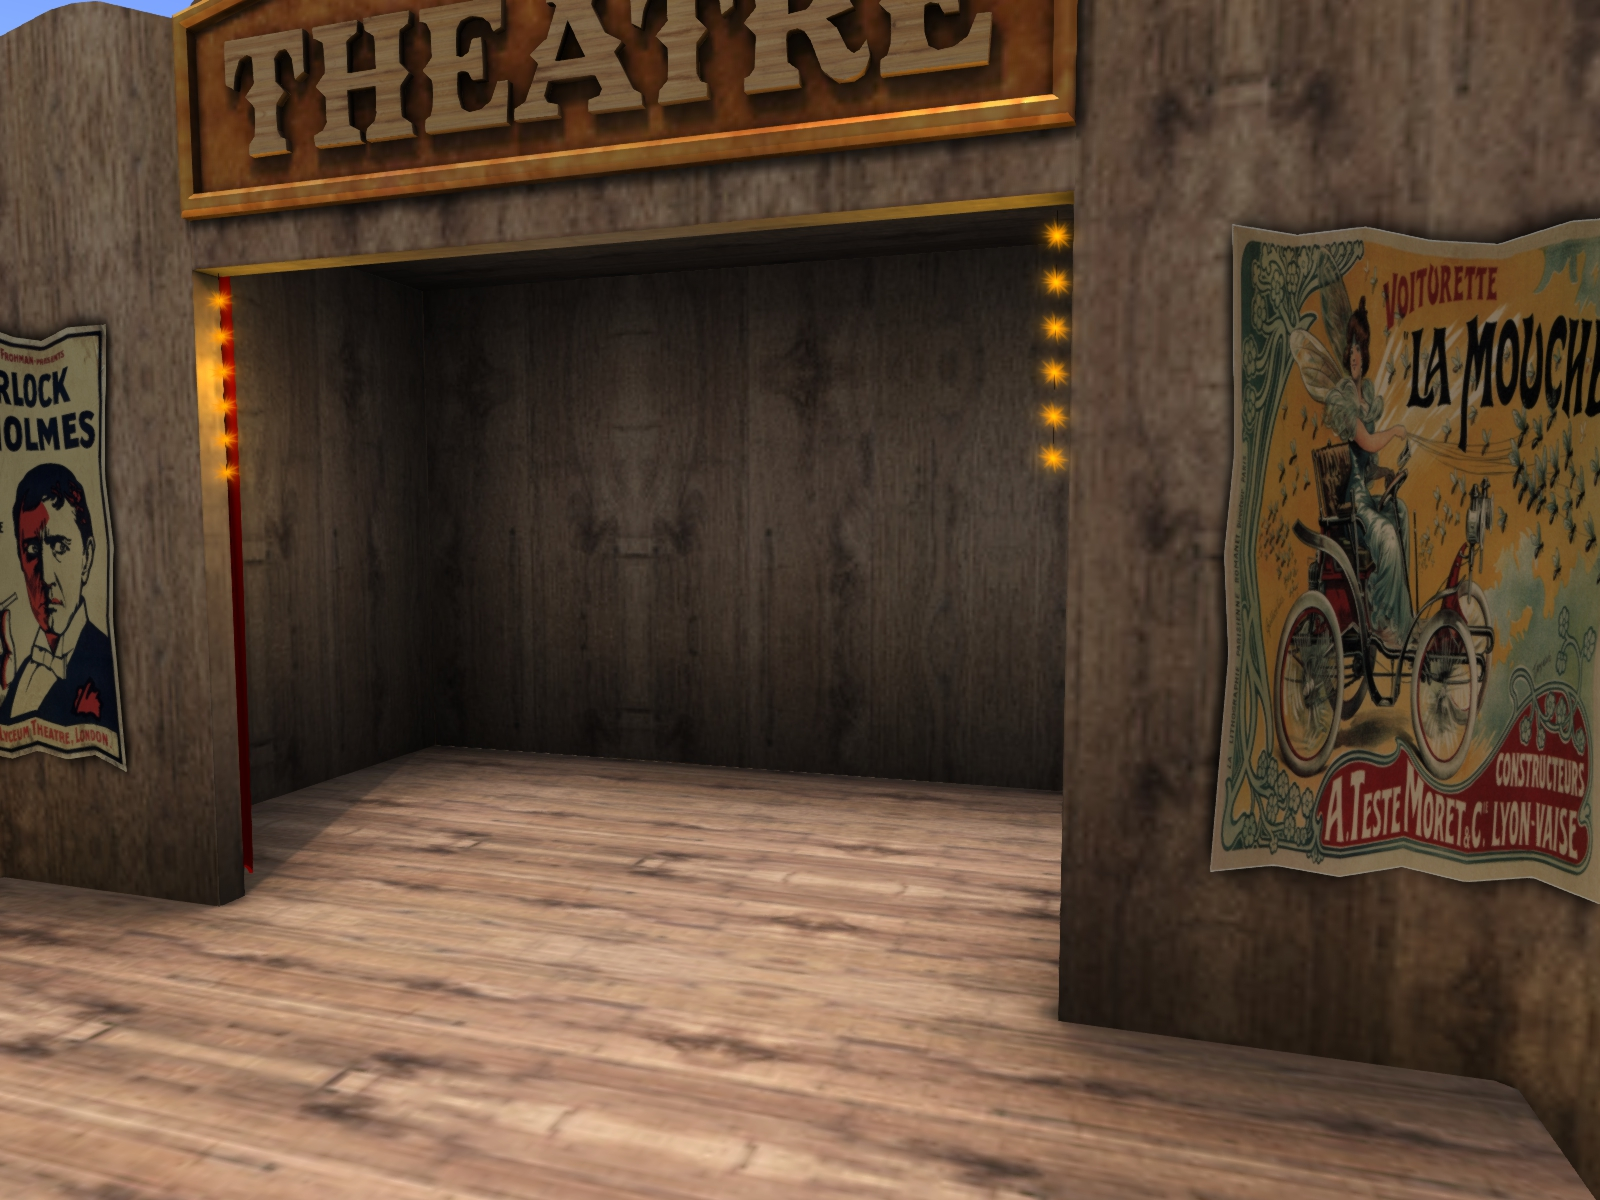 mesh_rustic_theatre_stage_adv_003_by_Harley_Schylo_littleharley_Resident  Harley Schylo